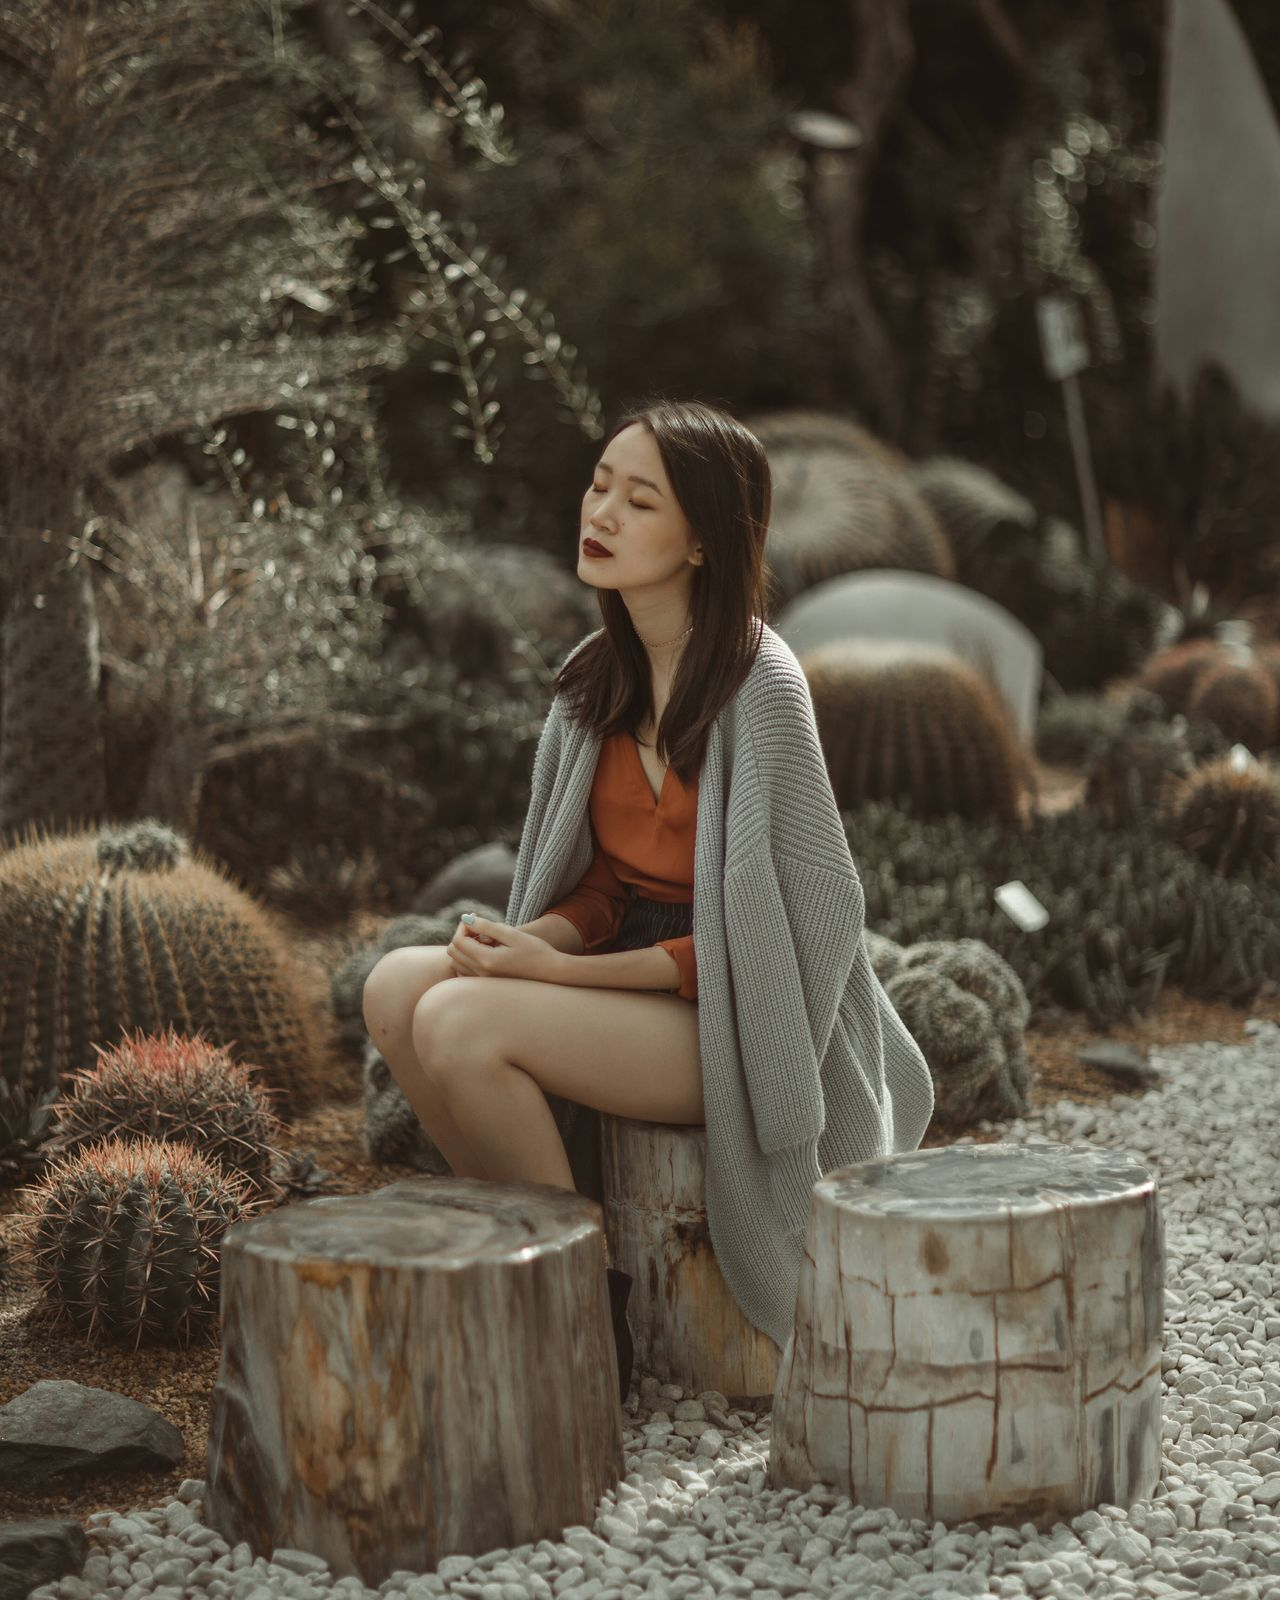 Enchanted Contemplation One Woman Only Beauty Portrait Nature Outdoors Beauty In Nature Travelling Wanderlust Traveller Adventure Women Around The World Natural Light Portrait Portrait Of A Girl Beautiful People Portrait Of A Woman Garden Garden Photography Plants